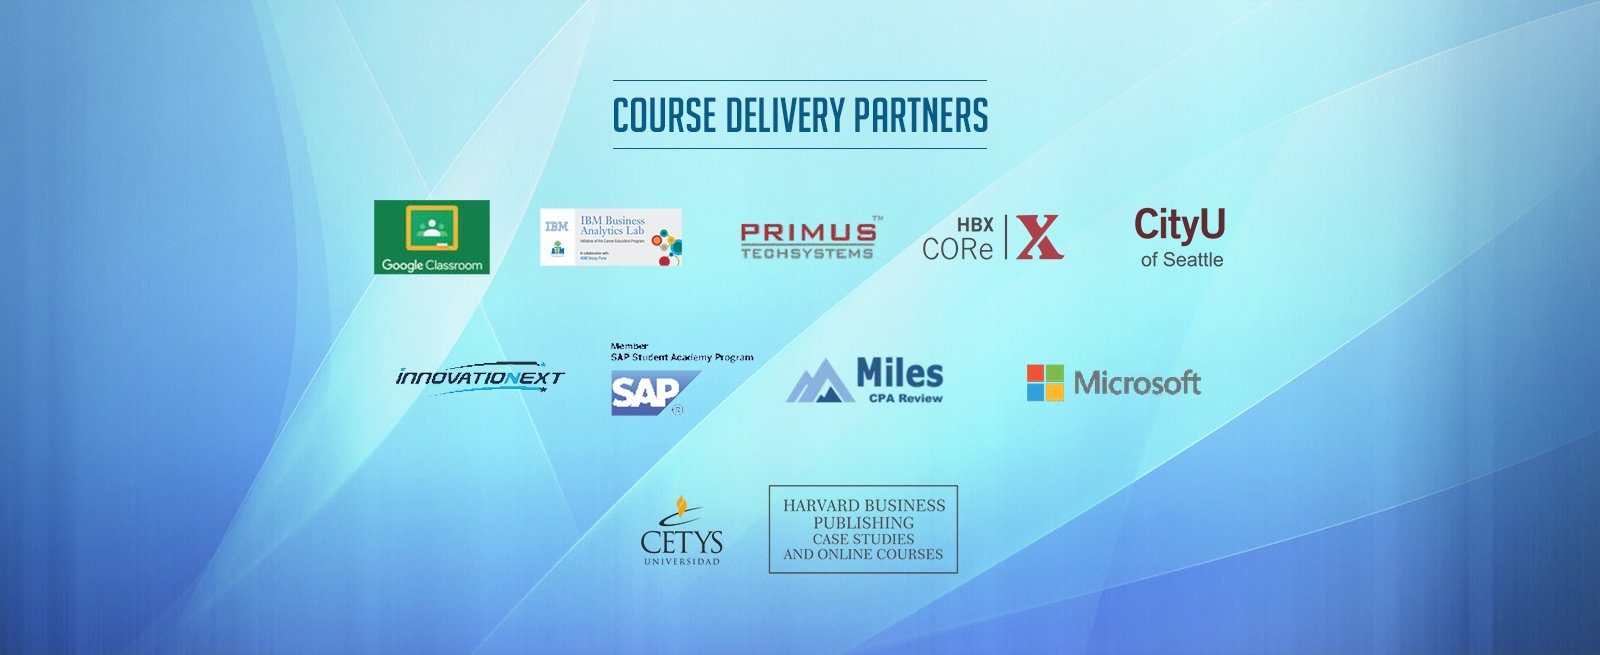 Course Delivery Partner - ASM IBMR